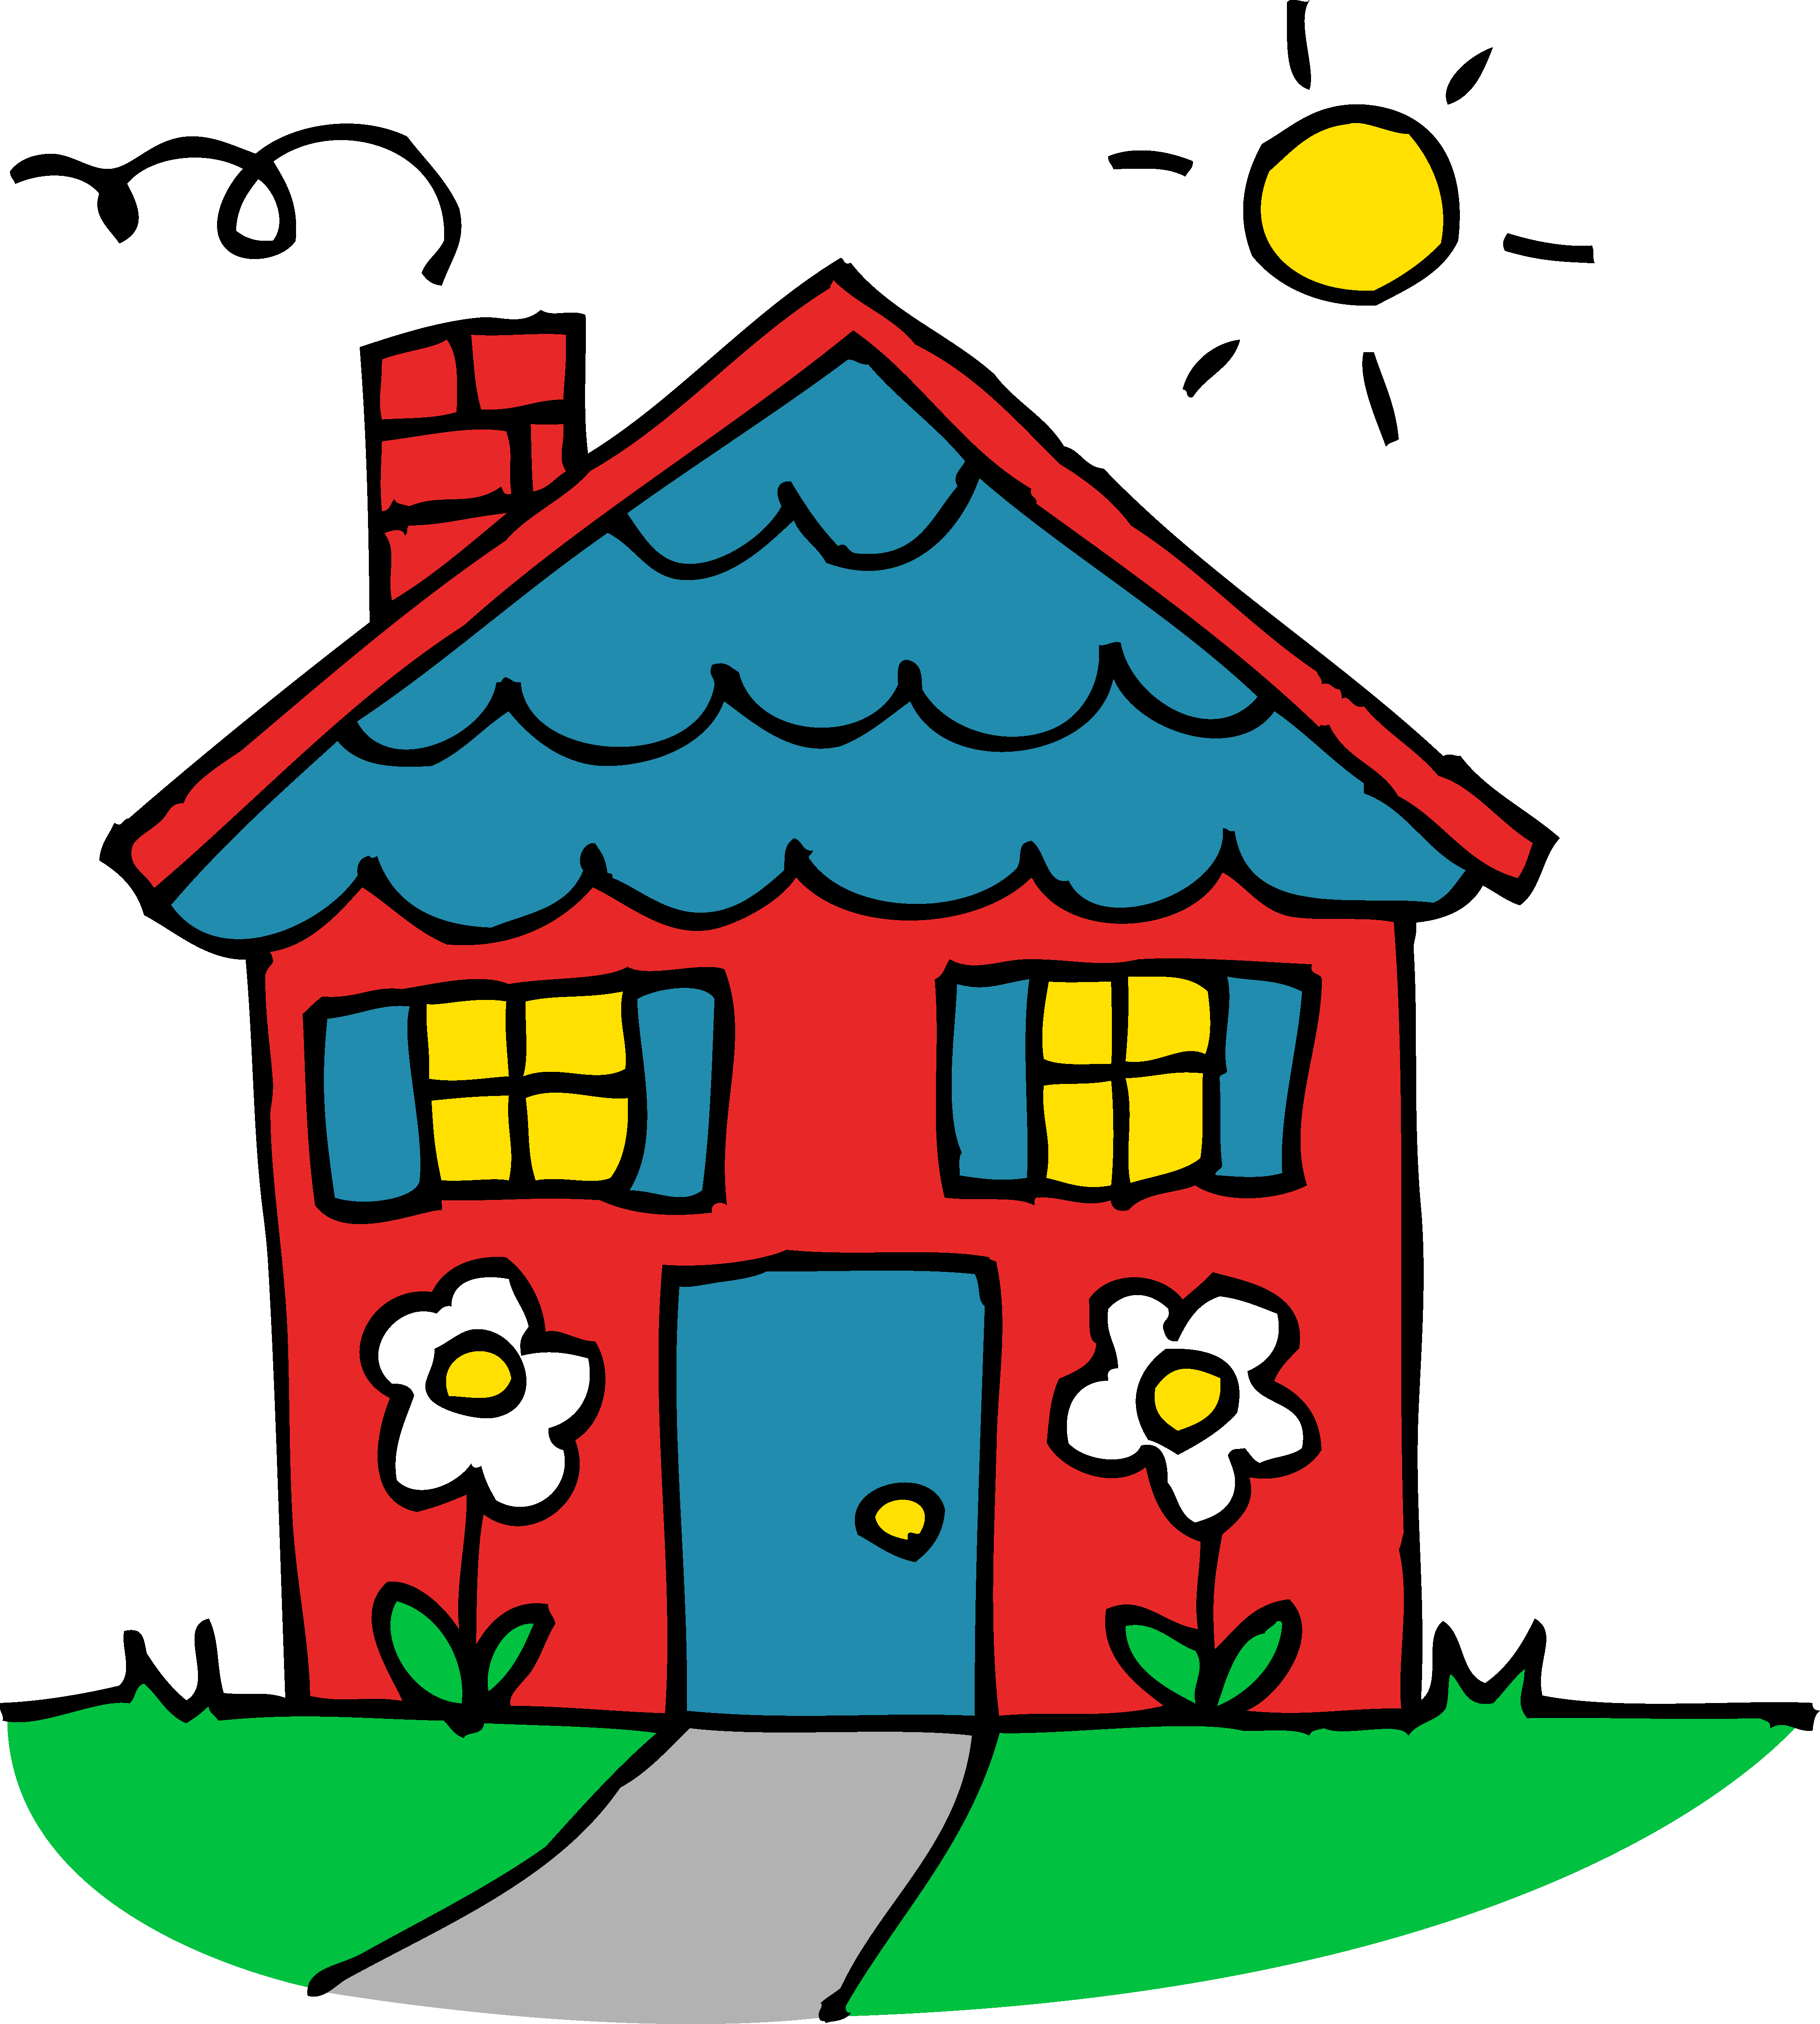 Dilapidated house clipart graphic black and white Drawing red house with a blue roof free image graphic black and white